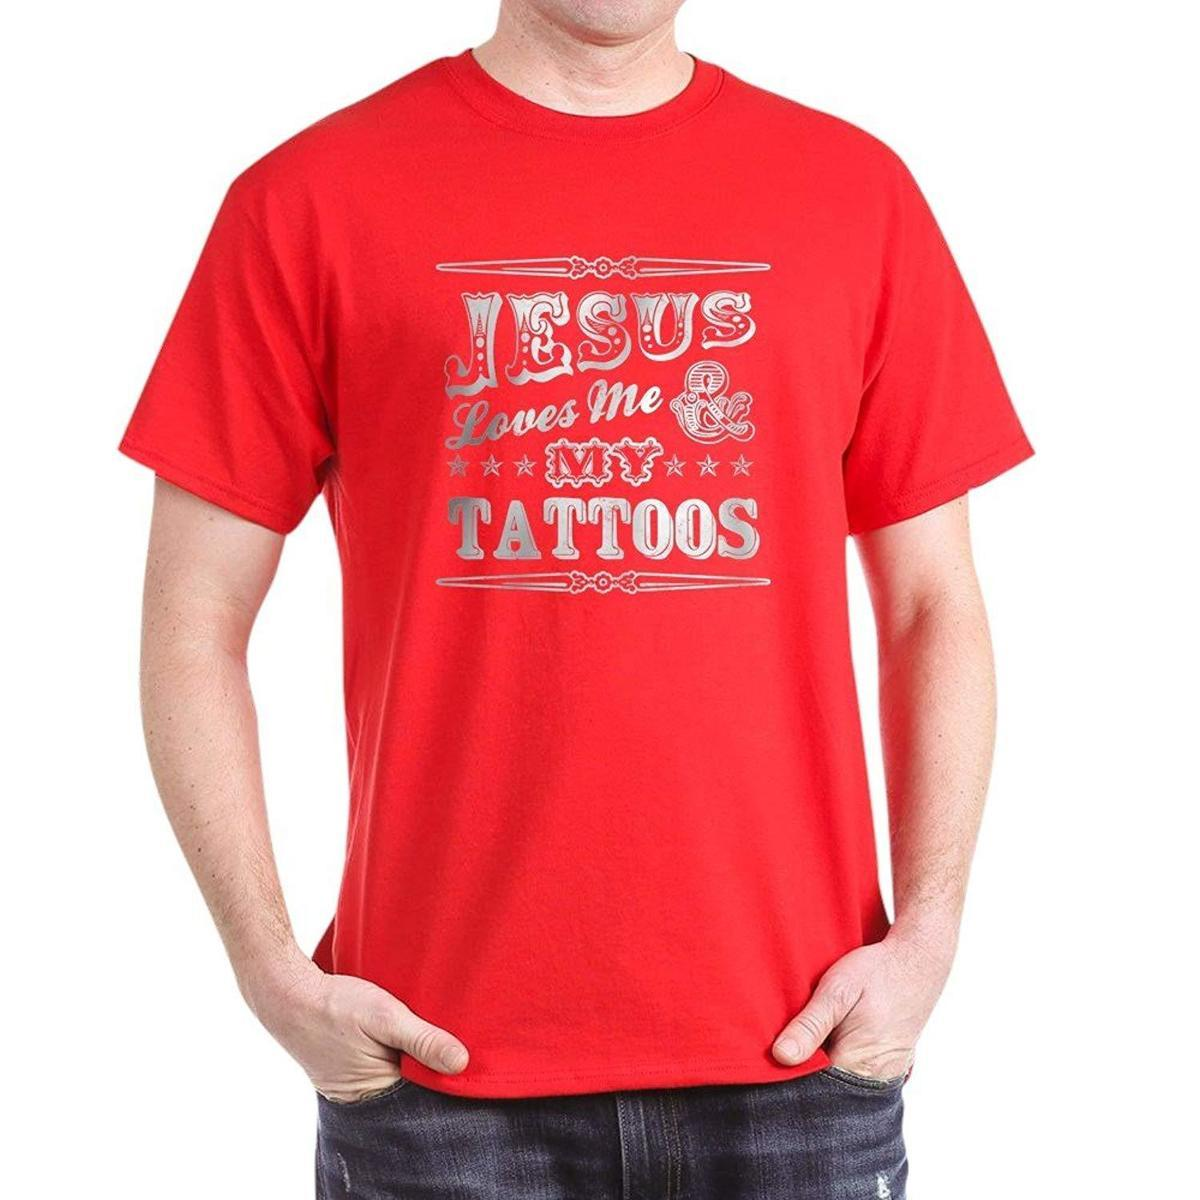 5b17fdb9a CafePress Jesus Loves Me And My Tattoos 100% Cotton T Shirt Novelty T Shirt  Funny Printed T Shirts From Linnan03, $14.67  DHgate.Com